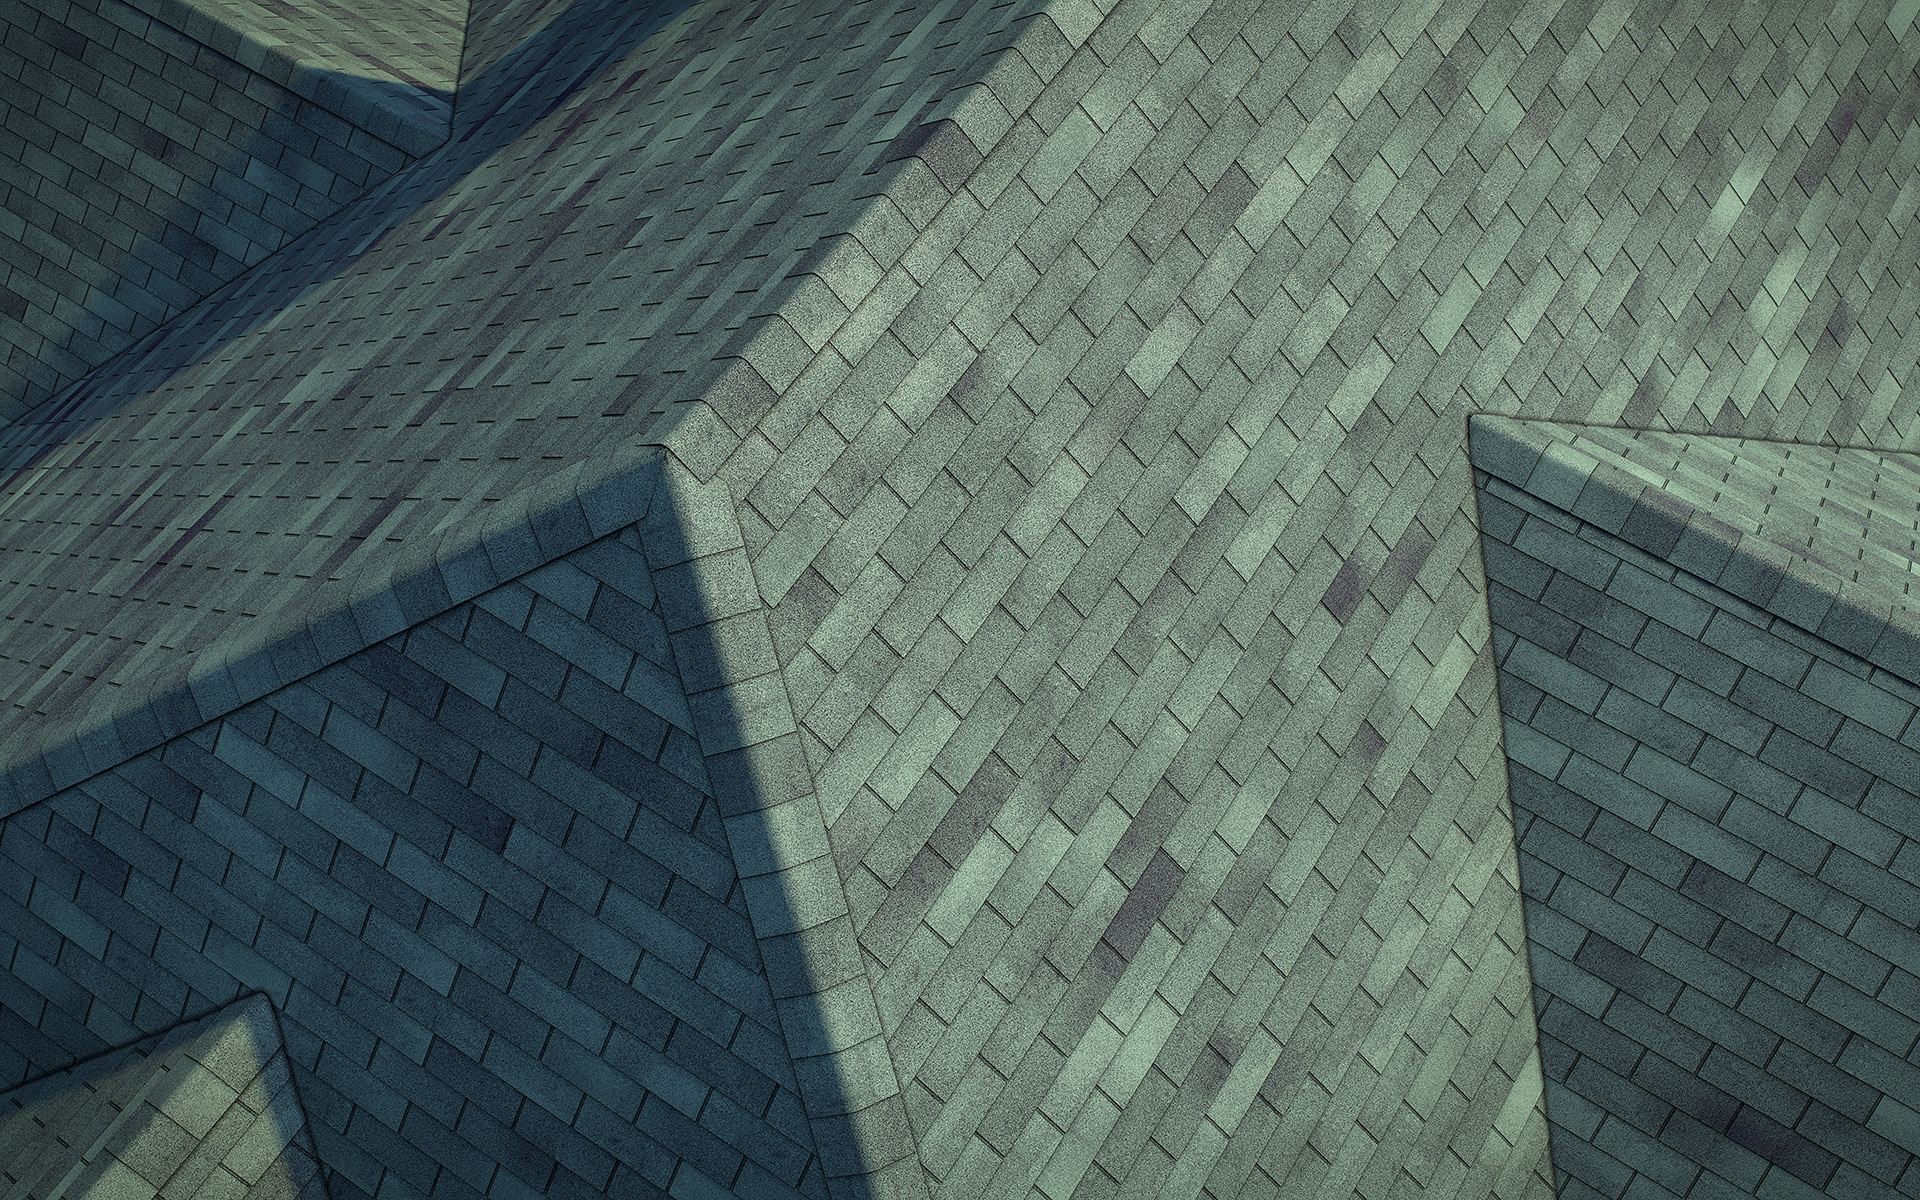 3-tab asphalt roof shingles green color 3D model preset for 3dsmax and RailClone. Rendered with vray, made for arch-viz.